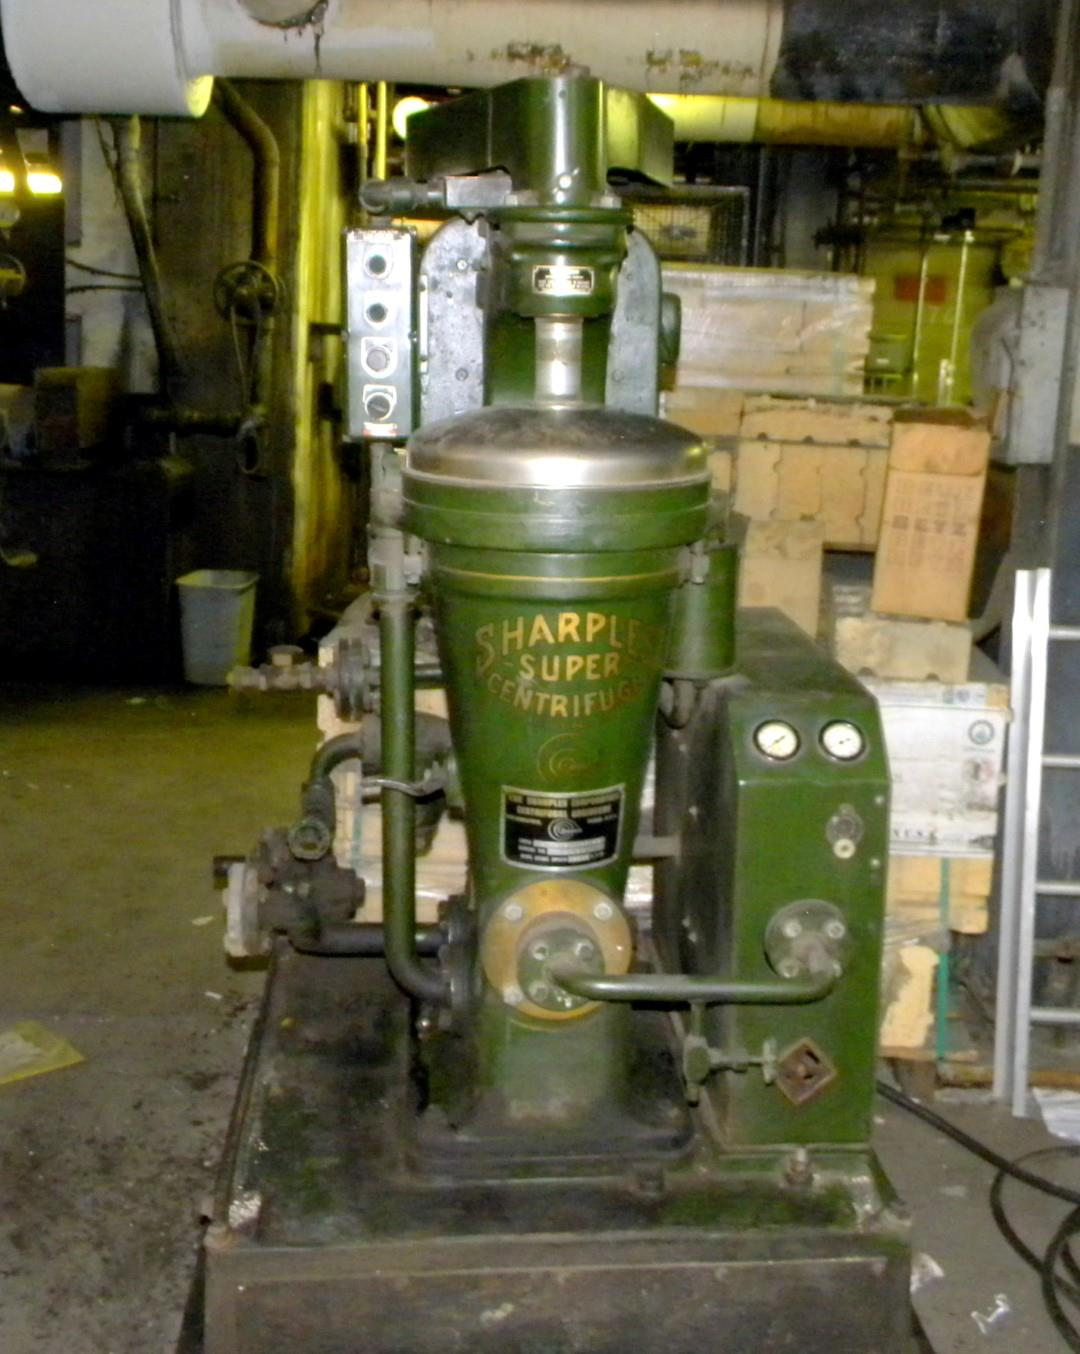 SP-1527 | Sharples Super Centrifuge Type M-308C-35 18F-43 Max Bowl Speed 15000 RPM. USED.  (2).JPG